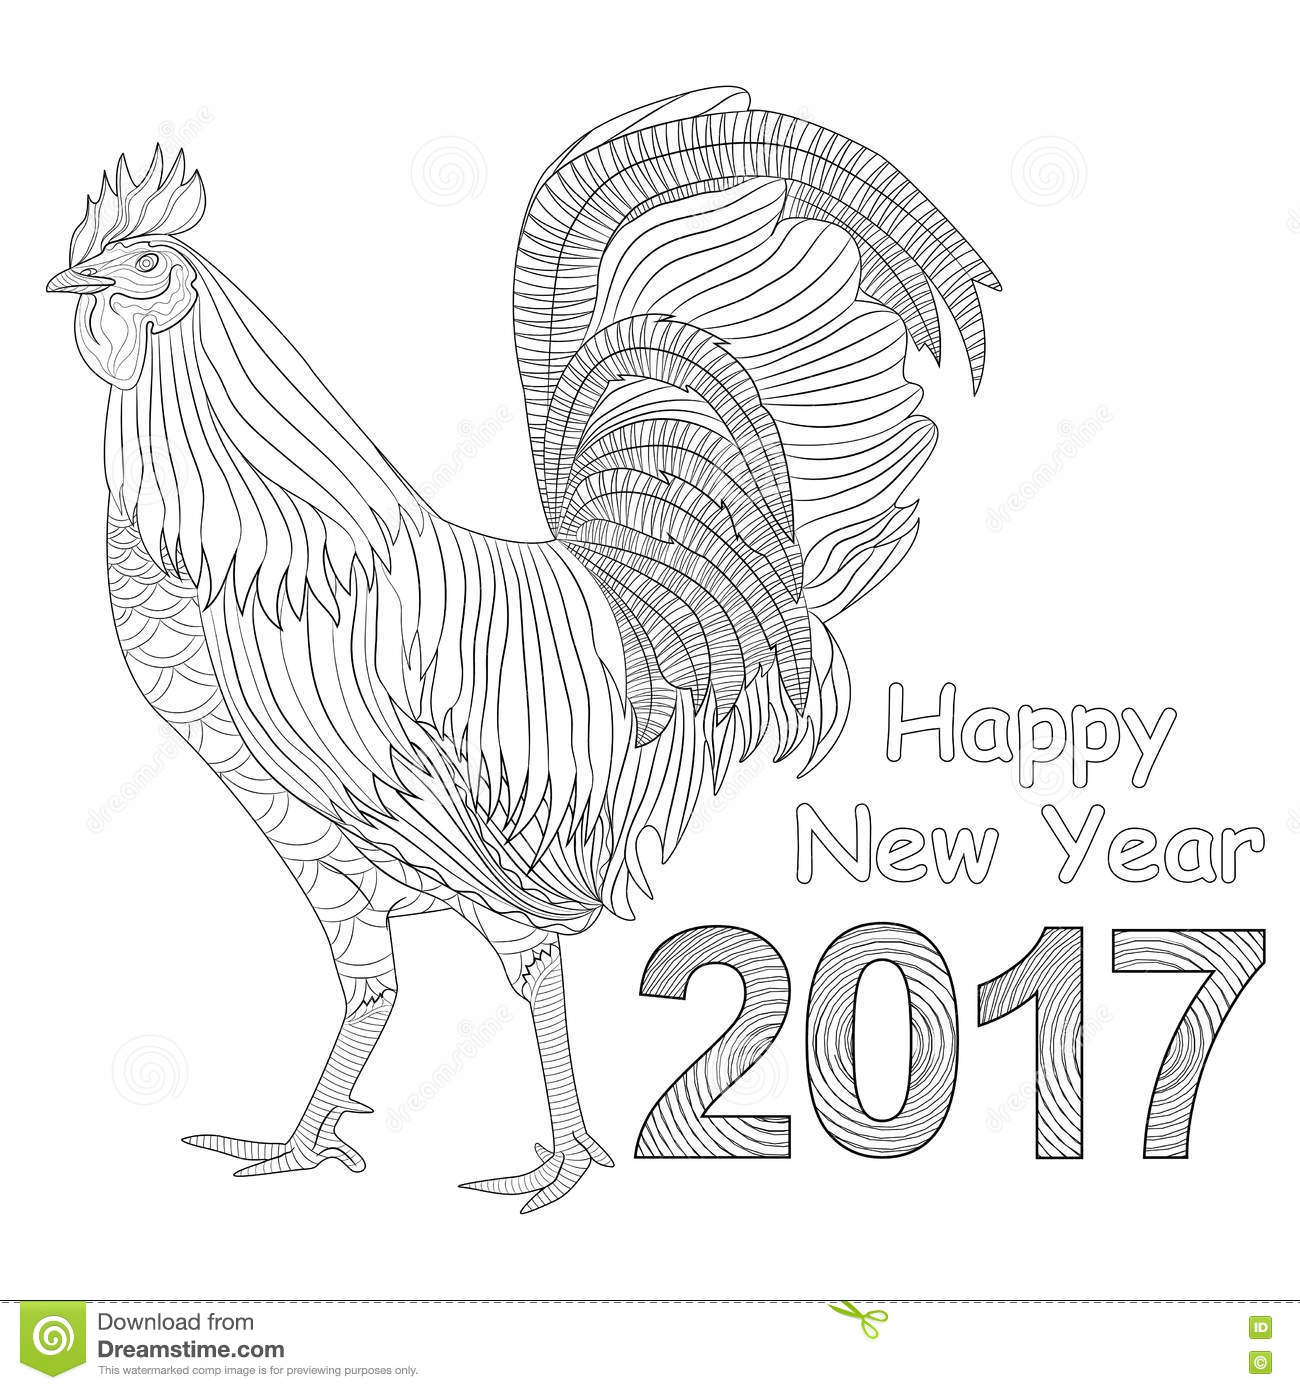 Rooster Coloring Book For Adult Chicken Chinese Zodiac Symbol Of The New Year Design T shirt